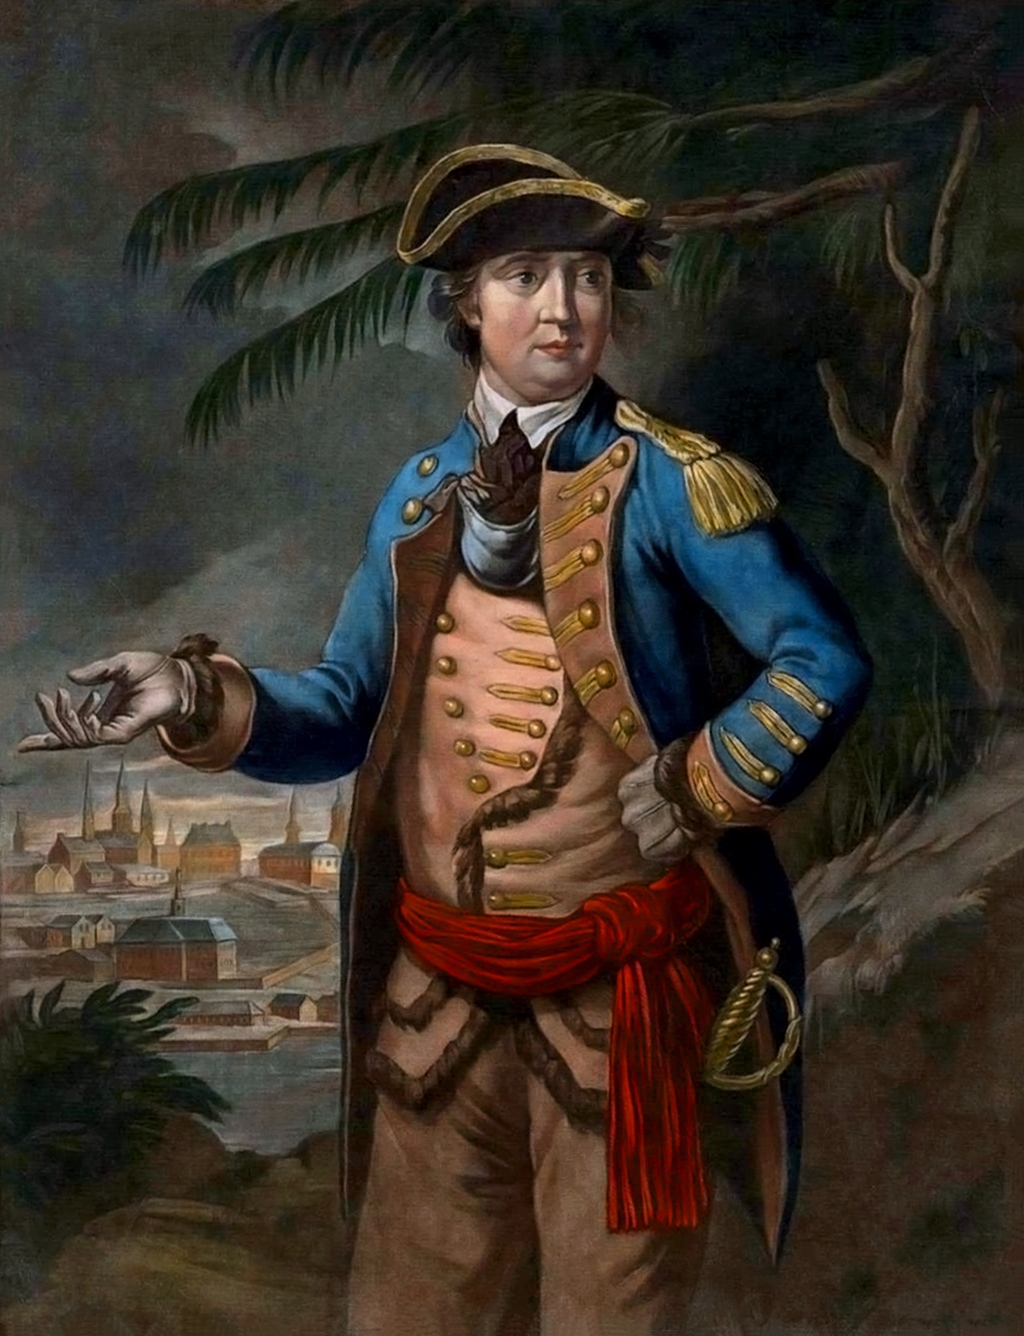 Color mezzotint by Thomas Hart depicting Benedict Arnold, captioned as follows: